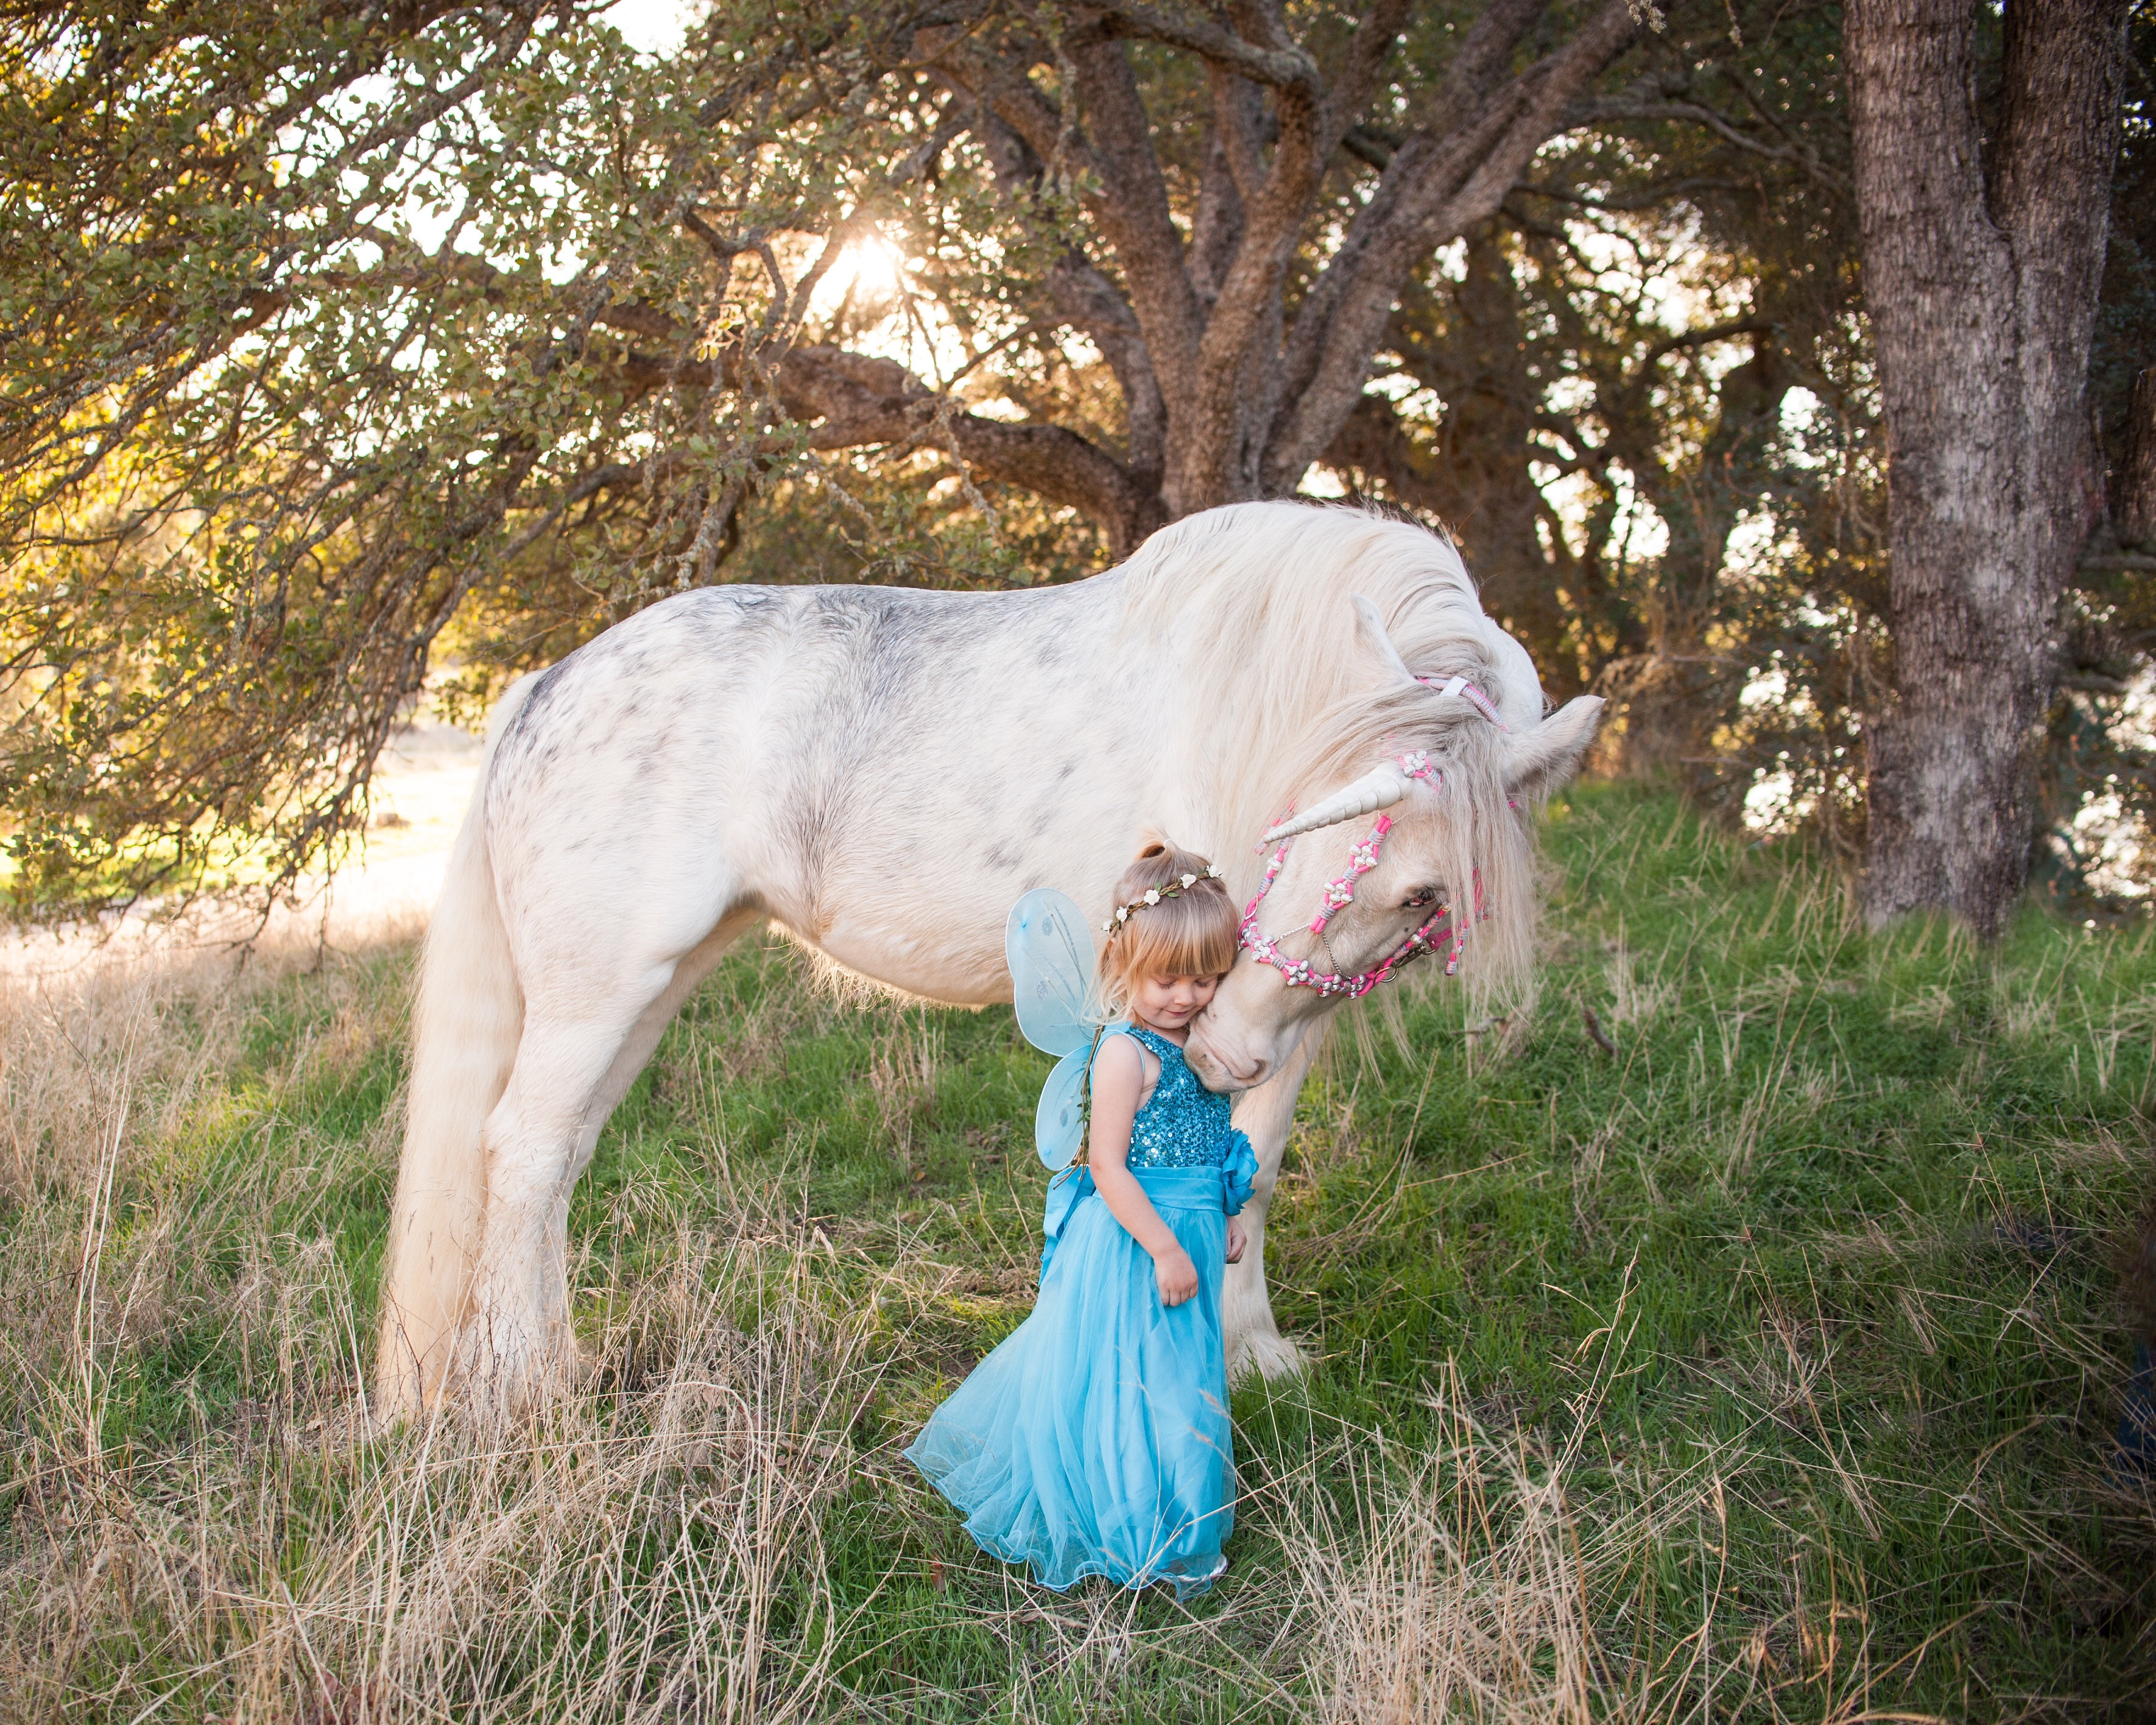 Magical unicorn nuzzles toddler dressed as a fairy princess in unicorn photoshoot in Creston, California. Unicorn hugs.